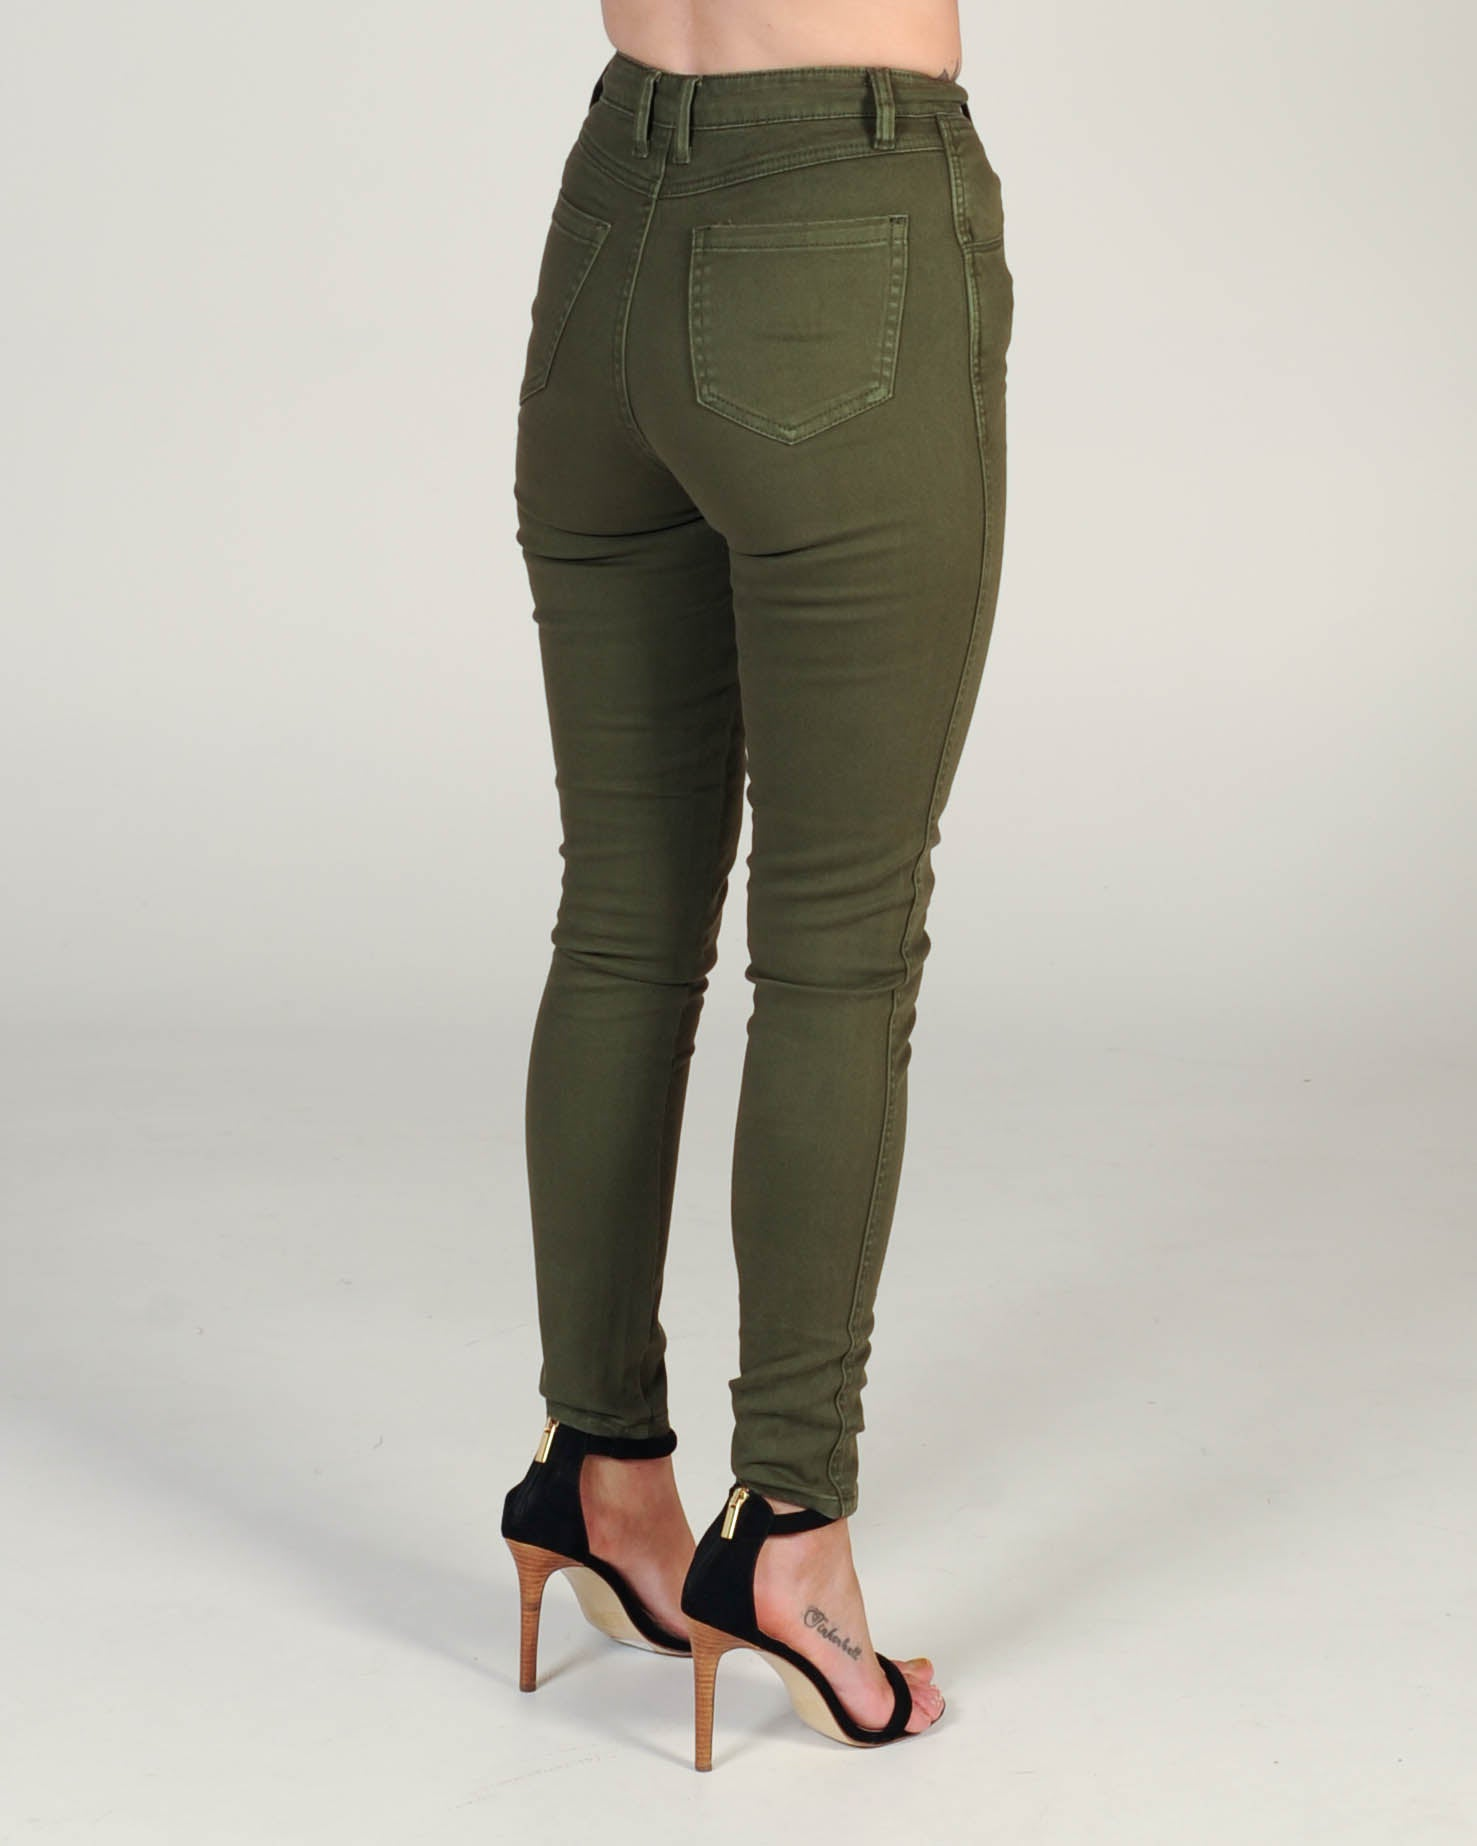 Dallas High Waisted Jean - Khaki